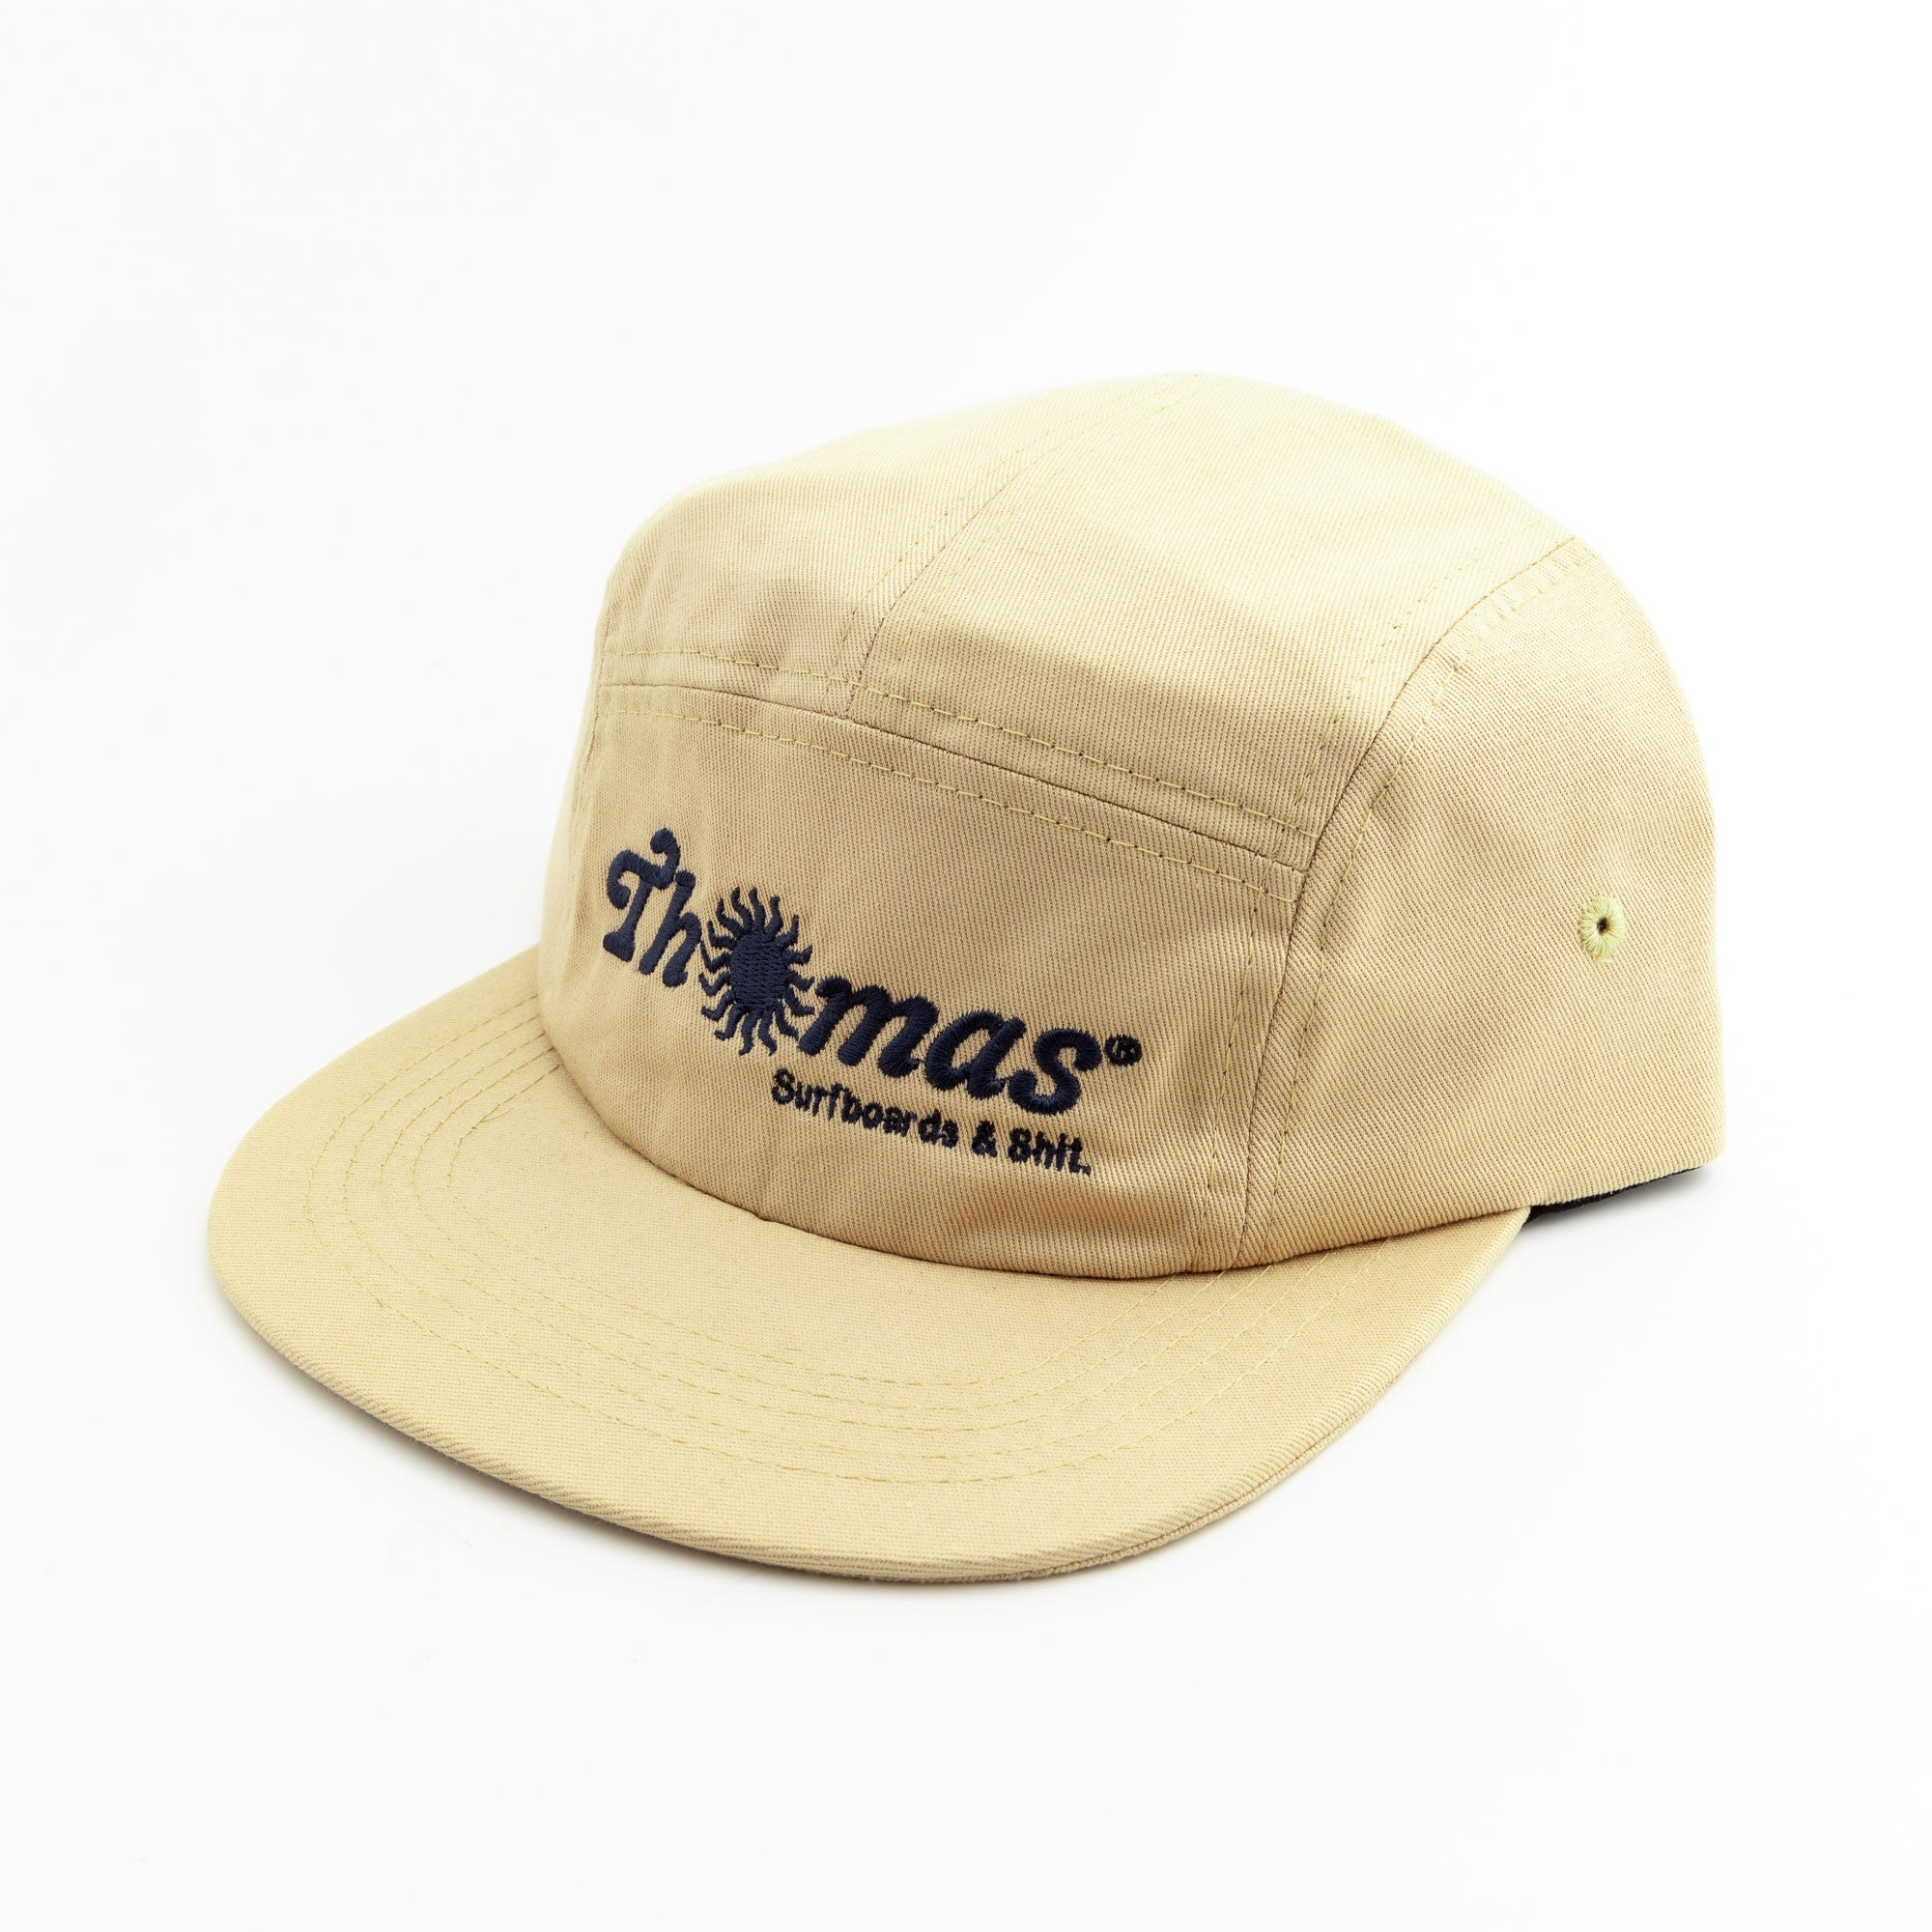 Thomas Surfboards & Shit Hat Cream